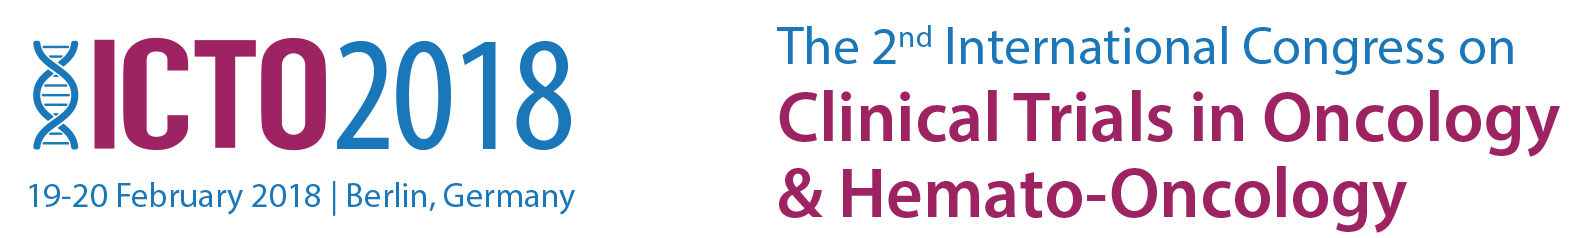 The 2nd World Congress on Clinical Trials in Oncology & Hemato-Oncology